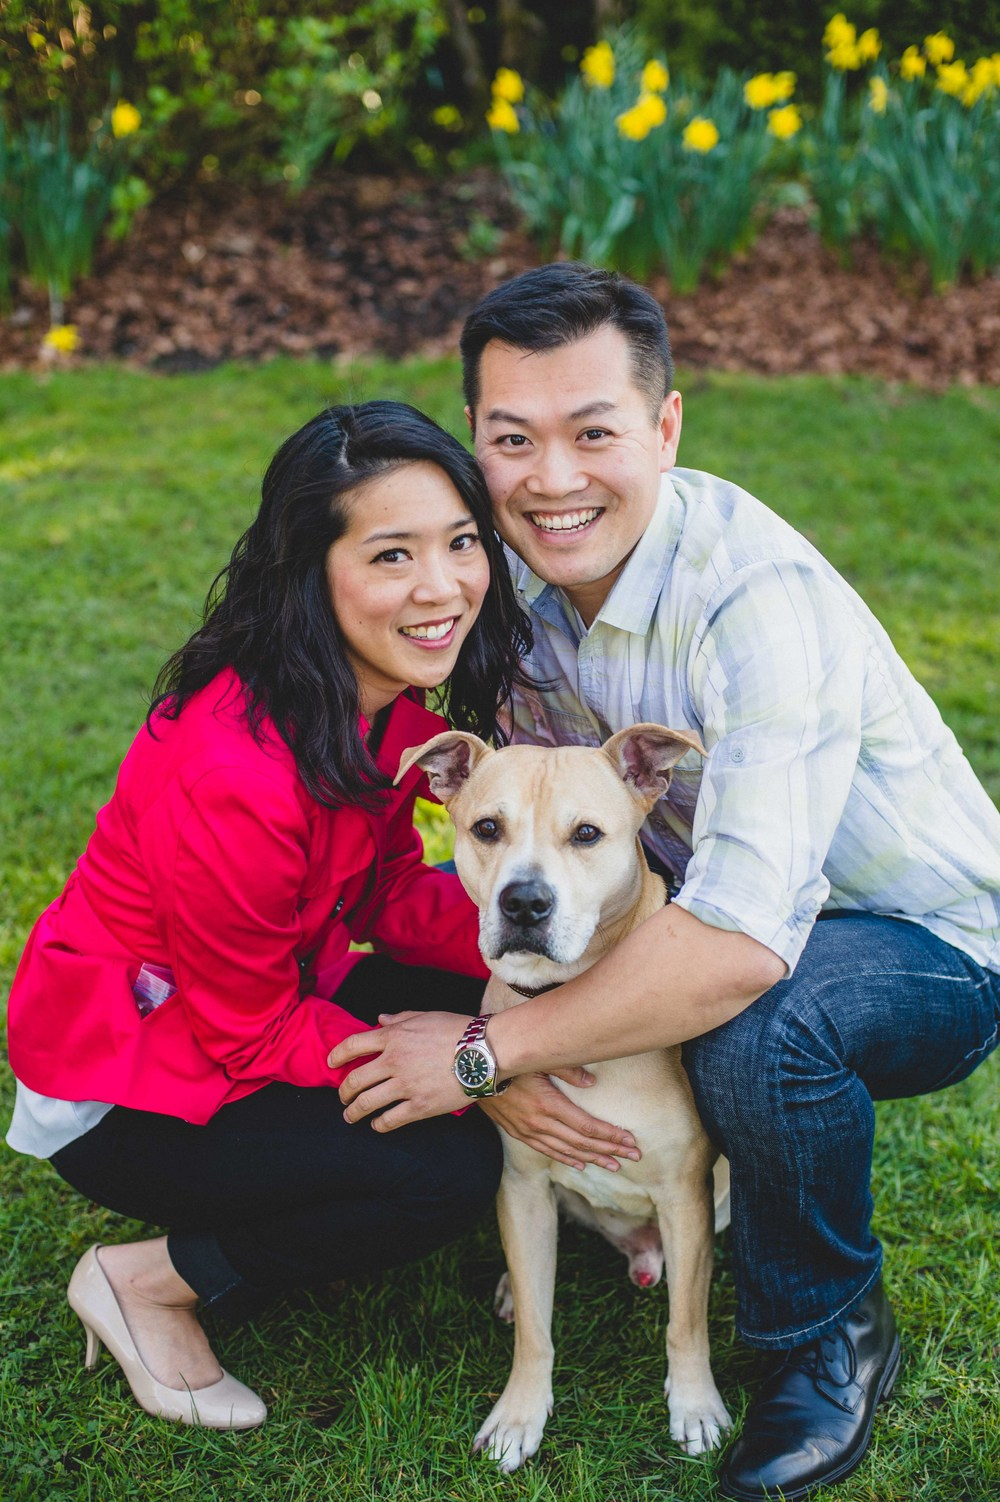 Vaccouver Queen Elizabeth Park engagement photography Edward Lai Photography-1.jpg